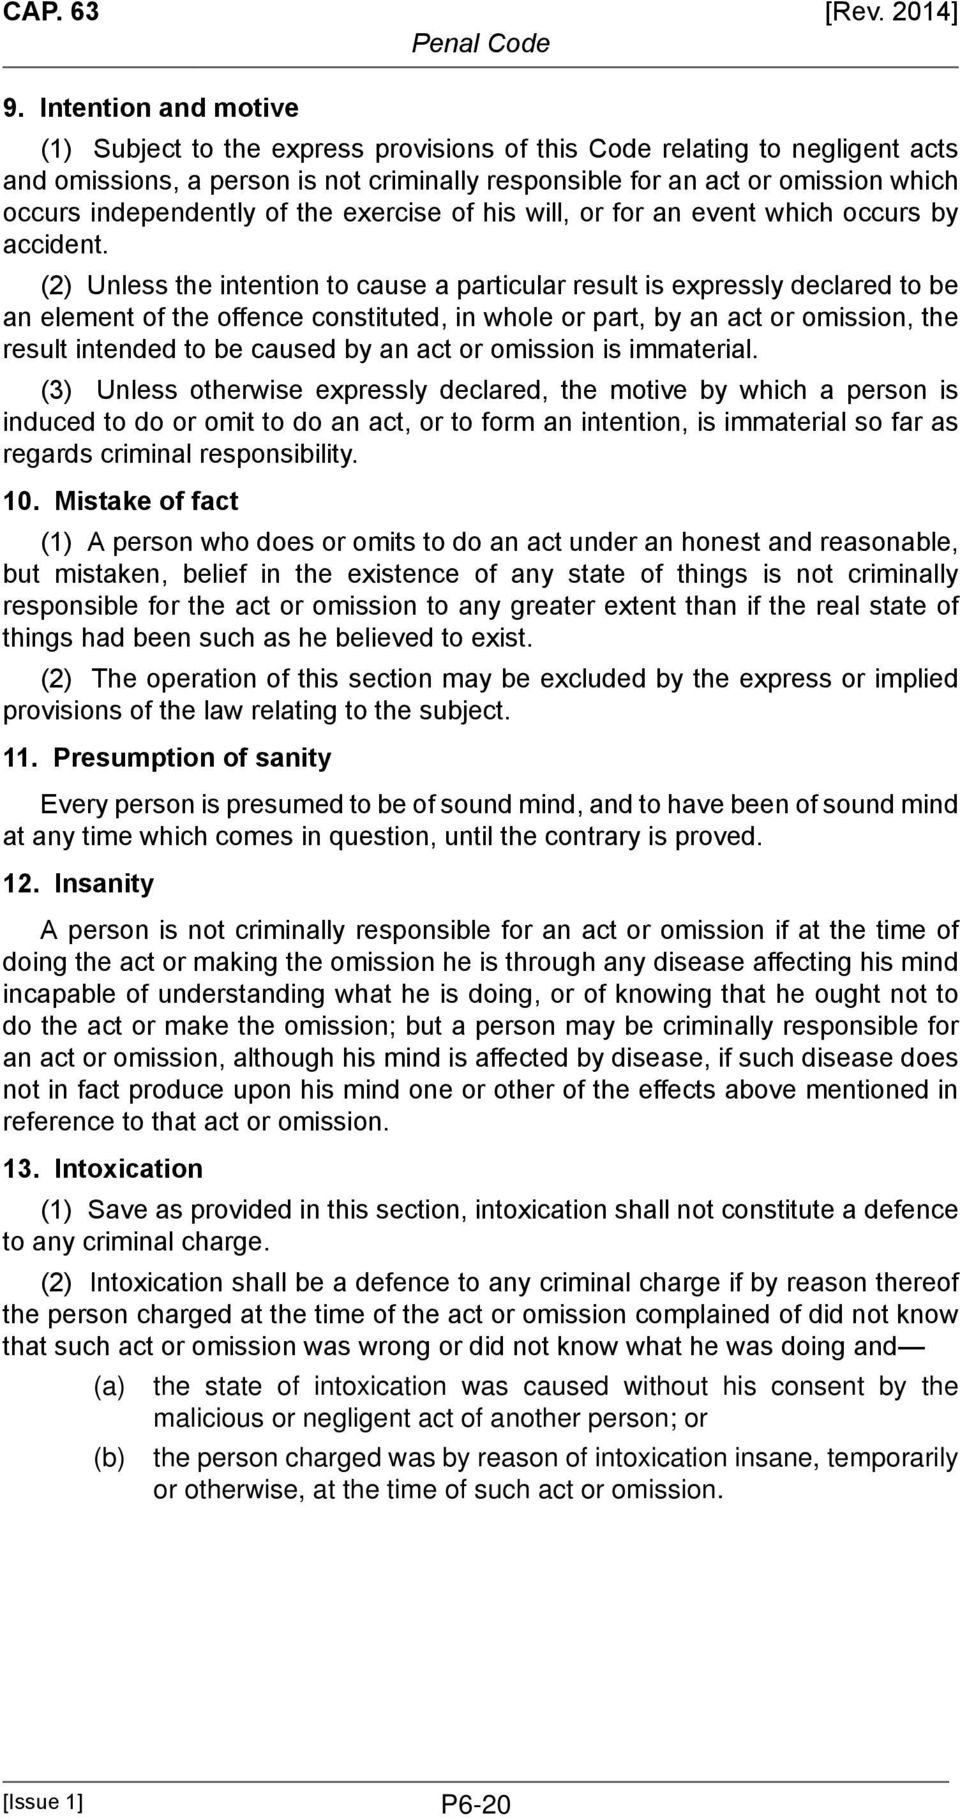 (2) Unless the intention to cause a particular result is expressly declared to be an element of the offence constituted, in whole or part, by an act or omission, the result intended to be caused by